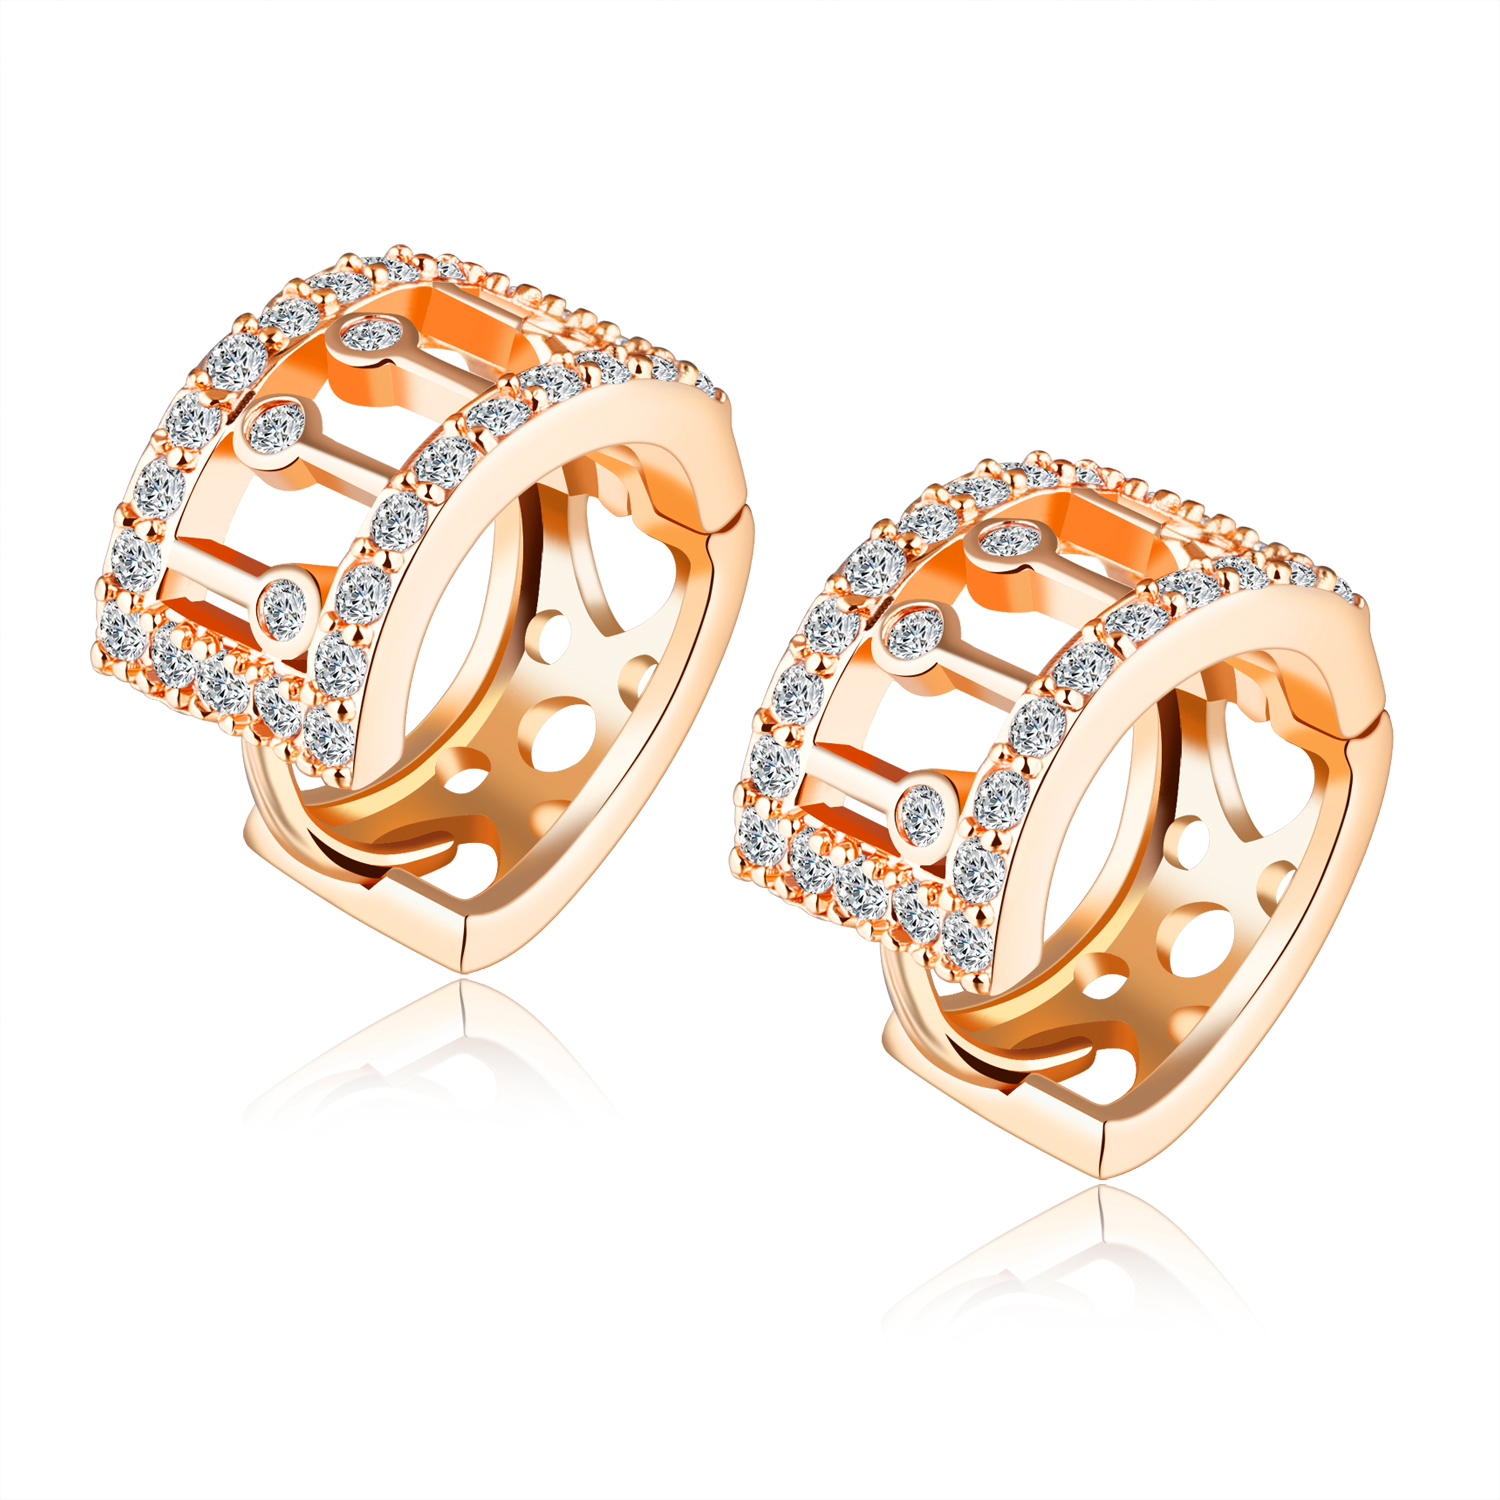 New Arrival Fashion Women Jewelry Delicate Accessories Inlaid Cz Little  Hoop Earrings Gift For Girls Kc678